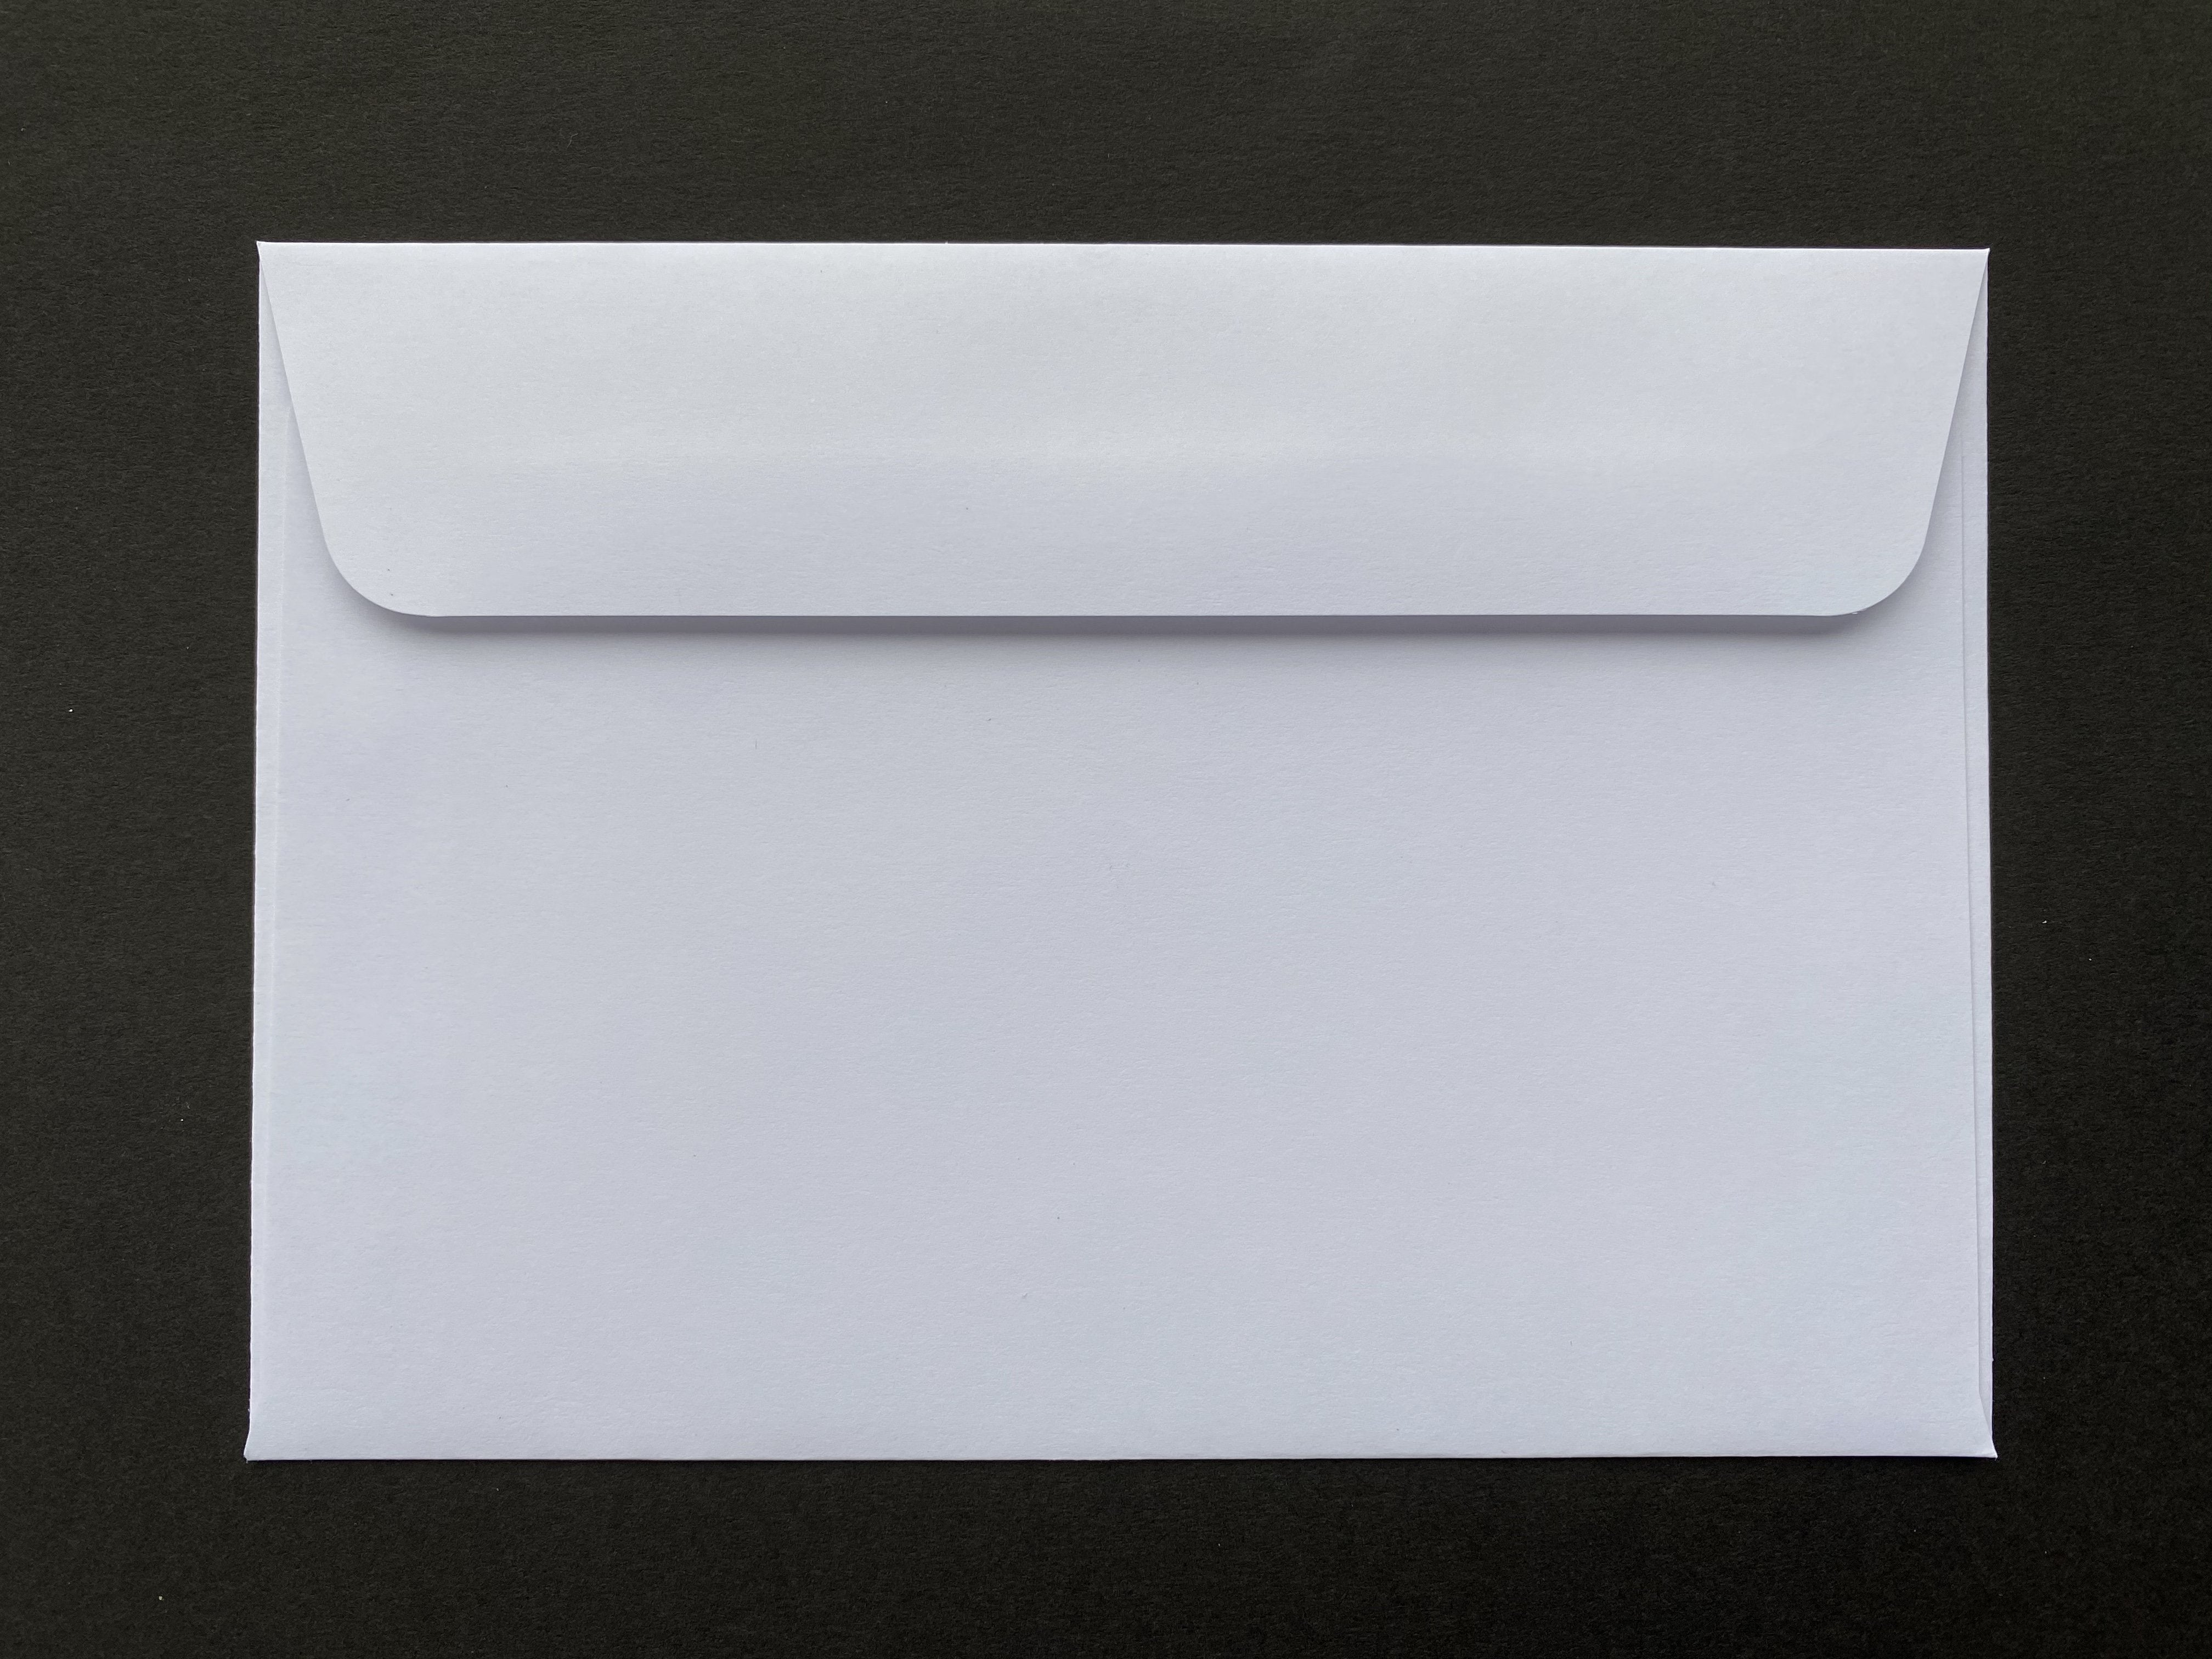 100x140mm white envelopes